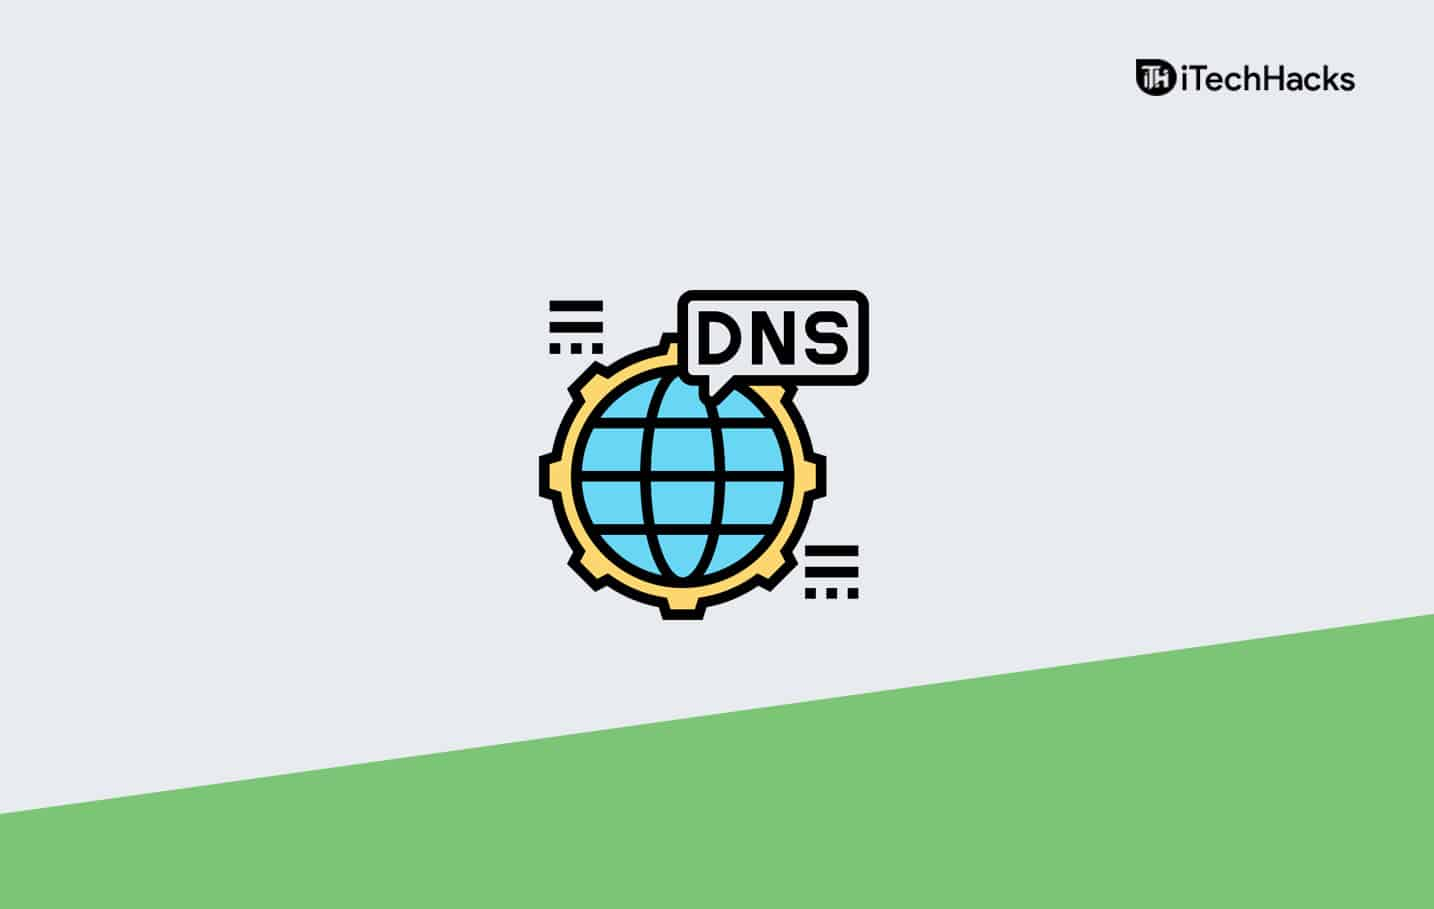 How To Fix The Windows 11 DNS Server Unavailable Error